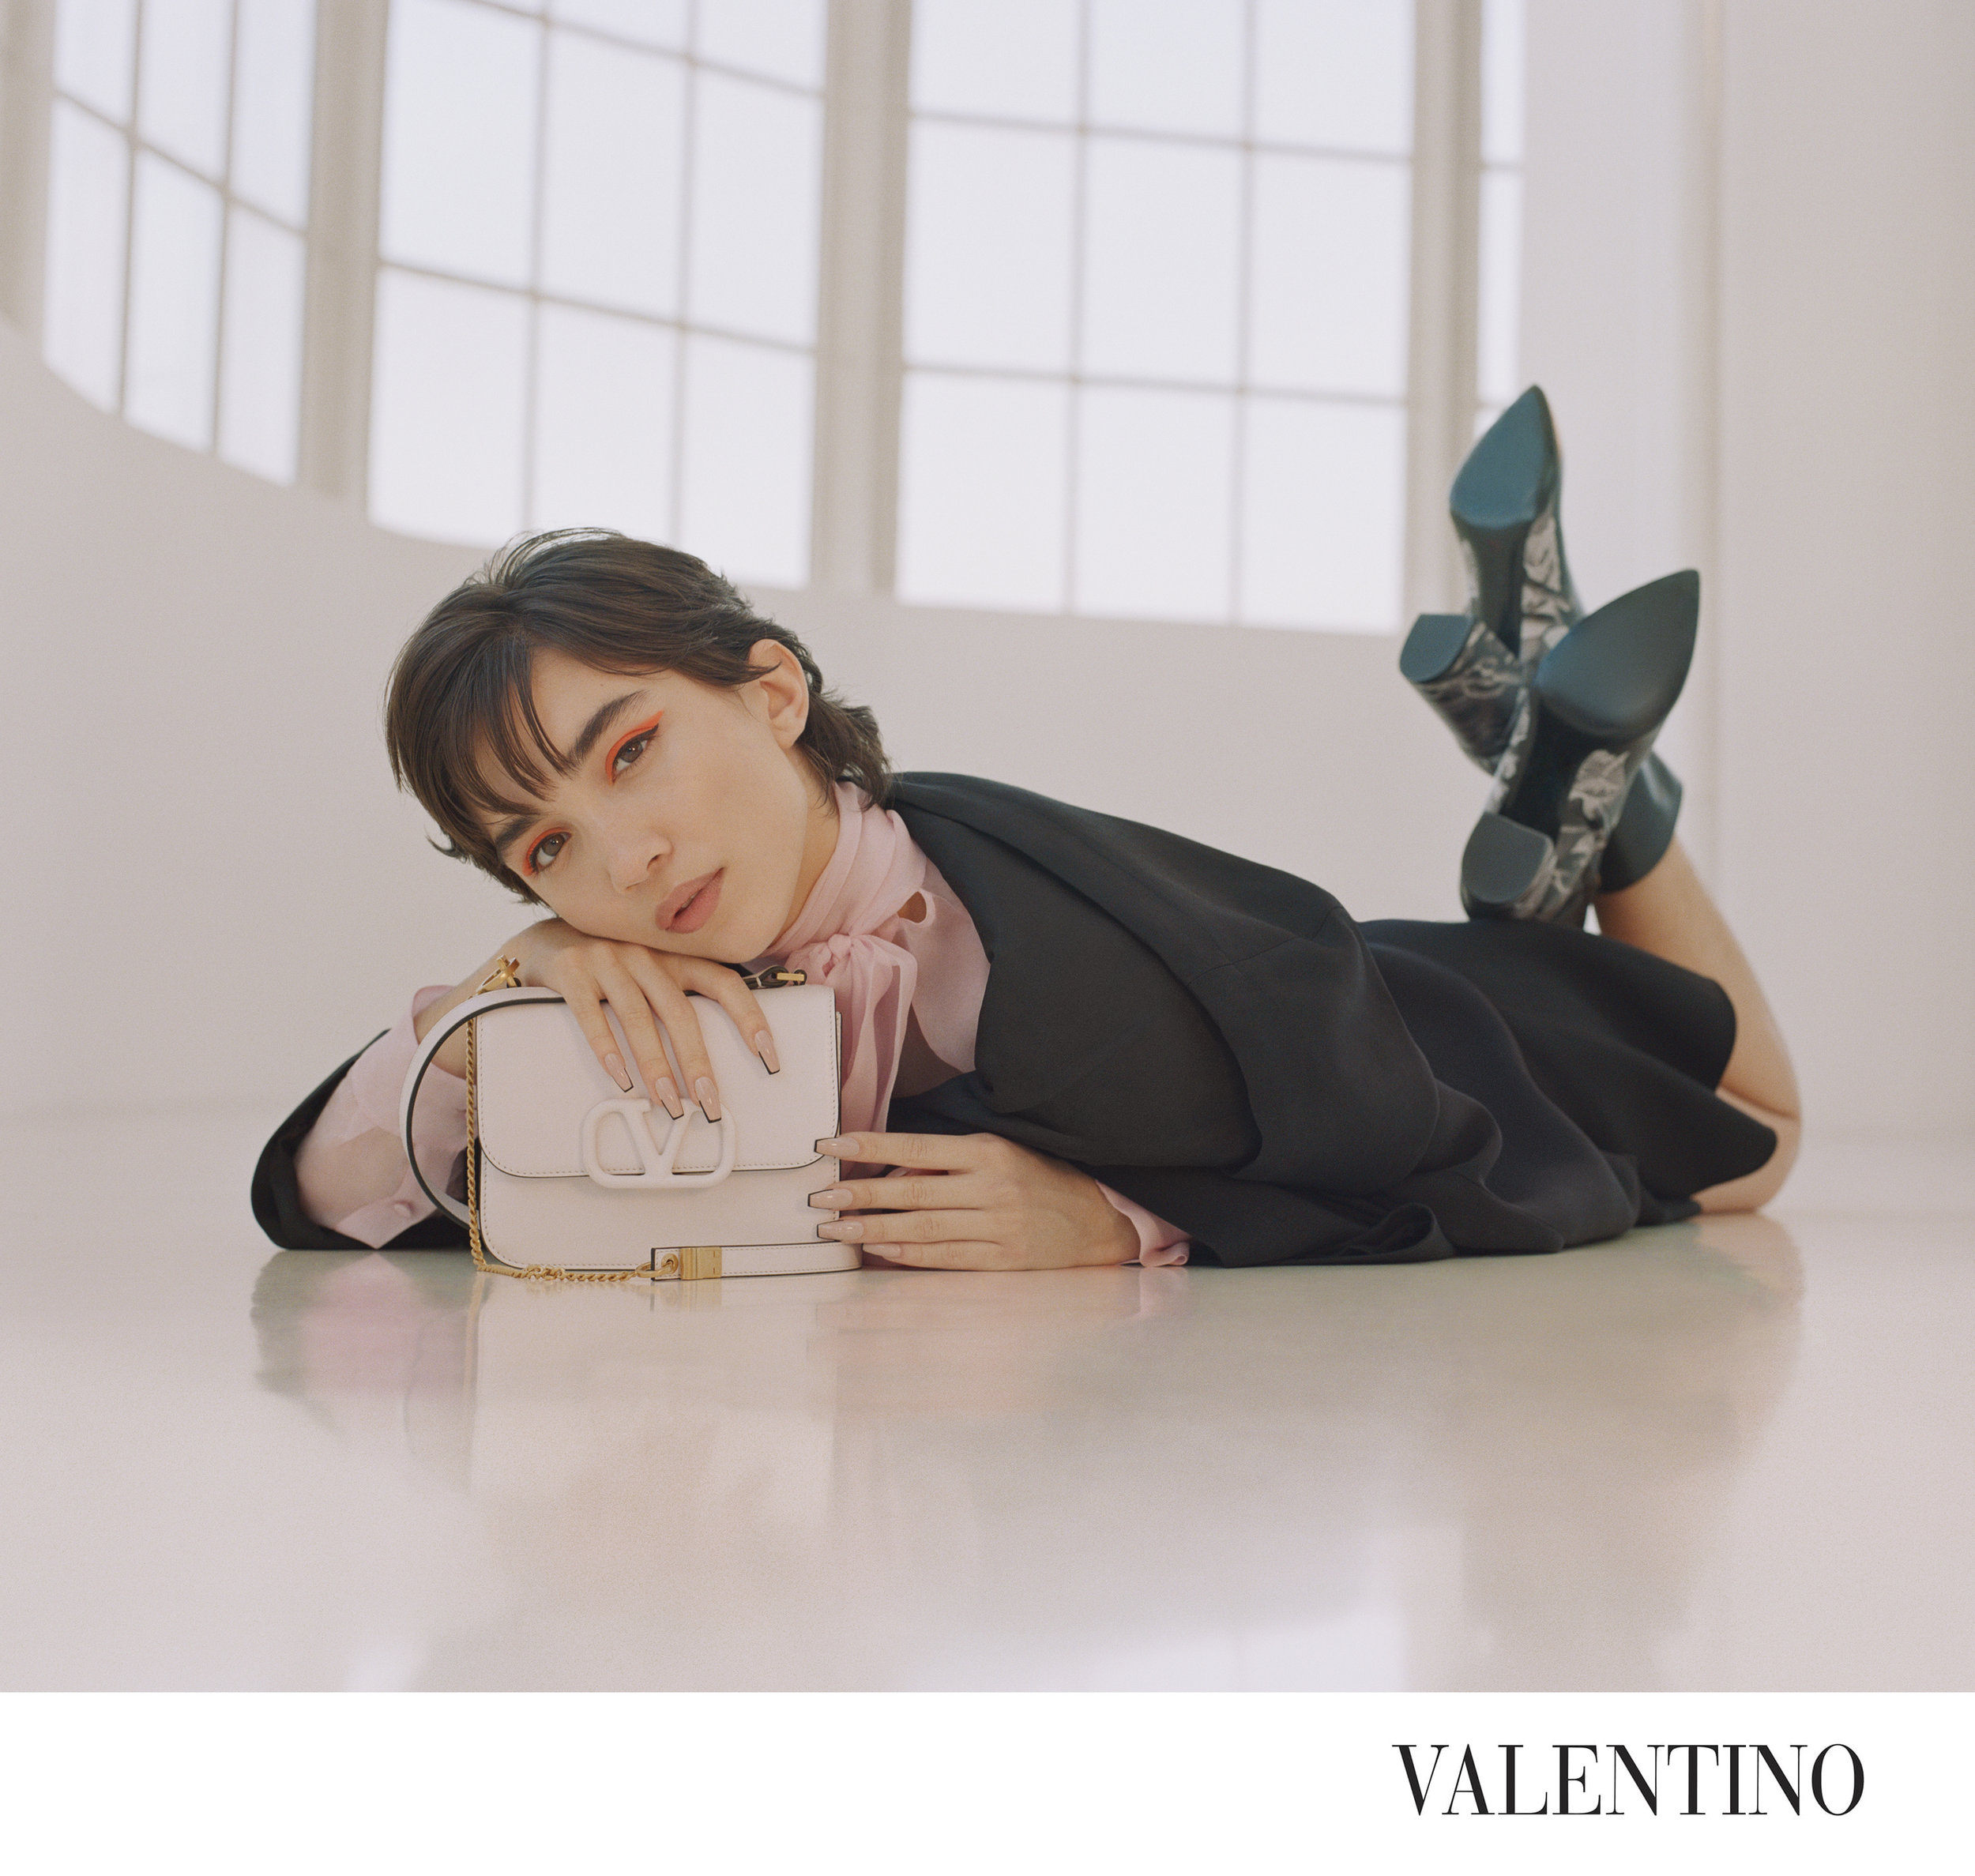 Rowan Blanchard for Maison Valentino Campaign  Photographed by Luke Gilford